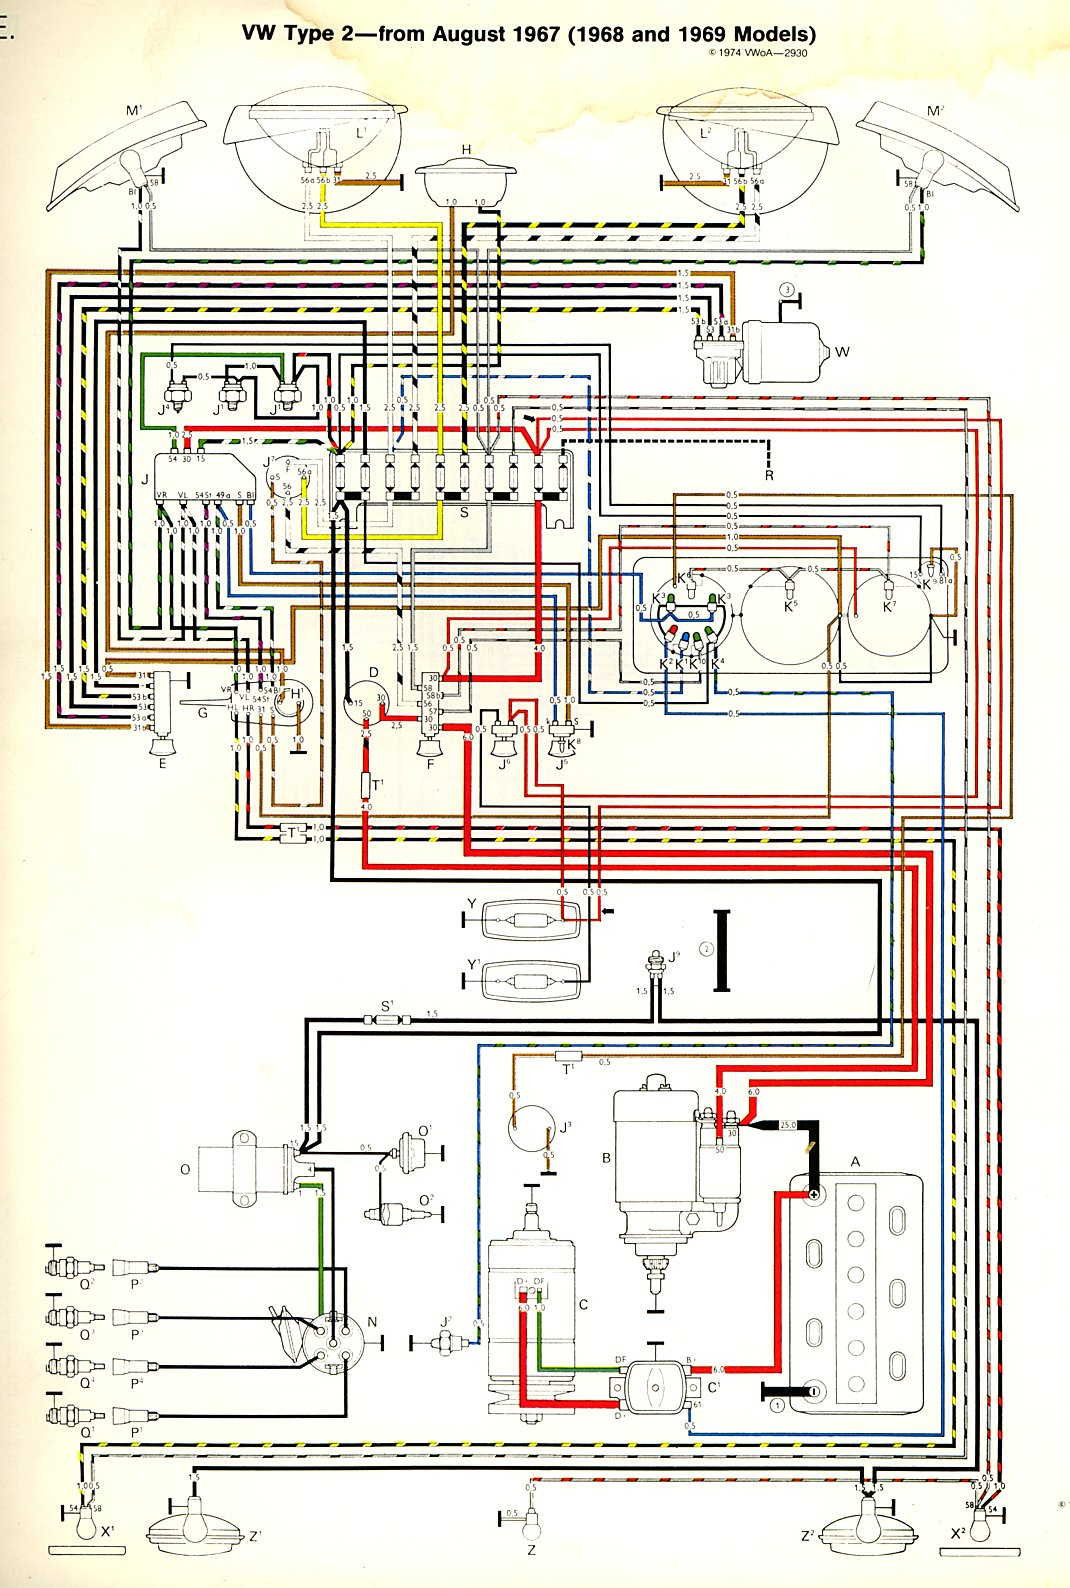 baybus_6869a bus wiring diagram vw wiring harness diagram \u2022 wiring diagrams j 1973 Super Beetle Wiring Diagram at crackthecode.co